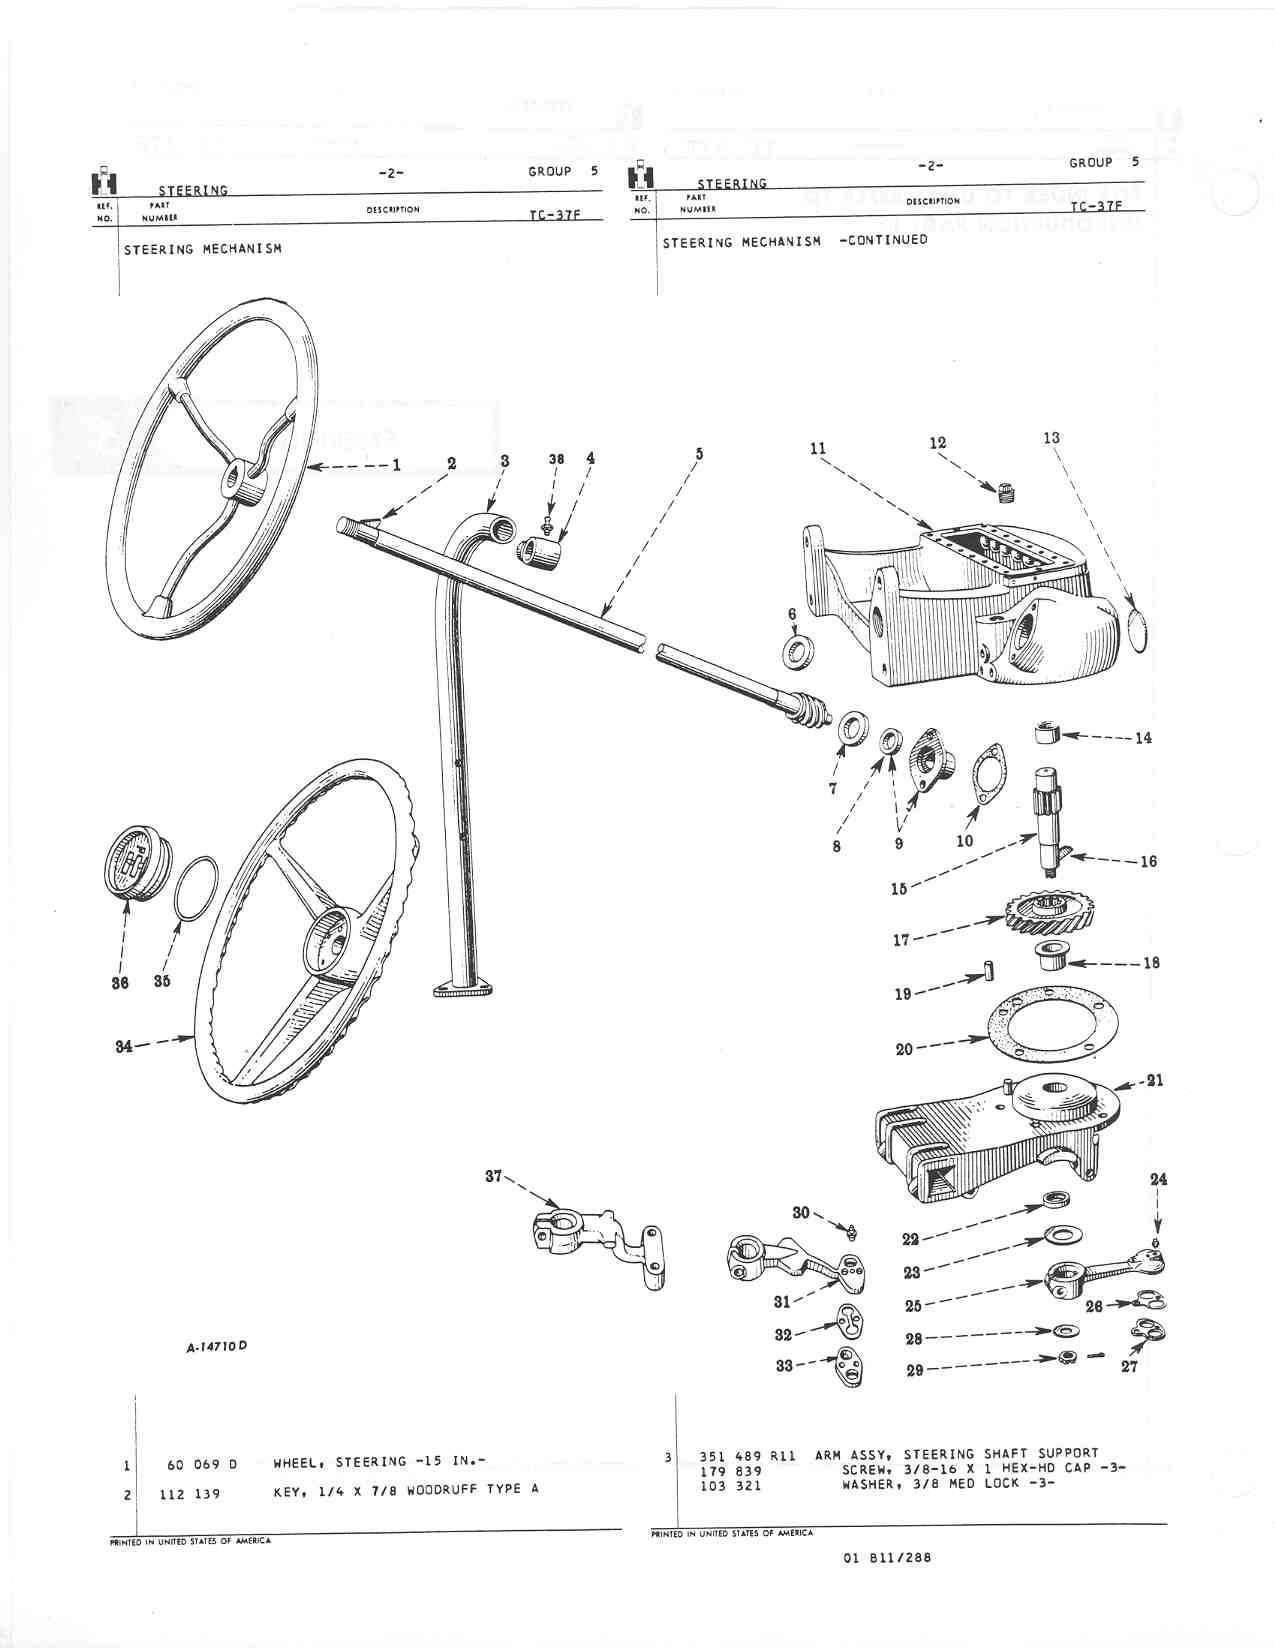 farmall cub parts diagram steering box farmall cub of farmall cub parts diagram?quality\\\\\\\\\\\\\\\=80\\\\\\\\\\\\\\\&strip\\\\\\\\\\\\\\\=all farmall cub steering diagram wiring diagram all data